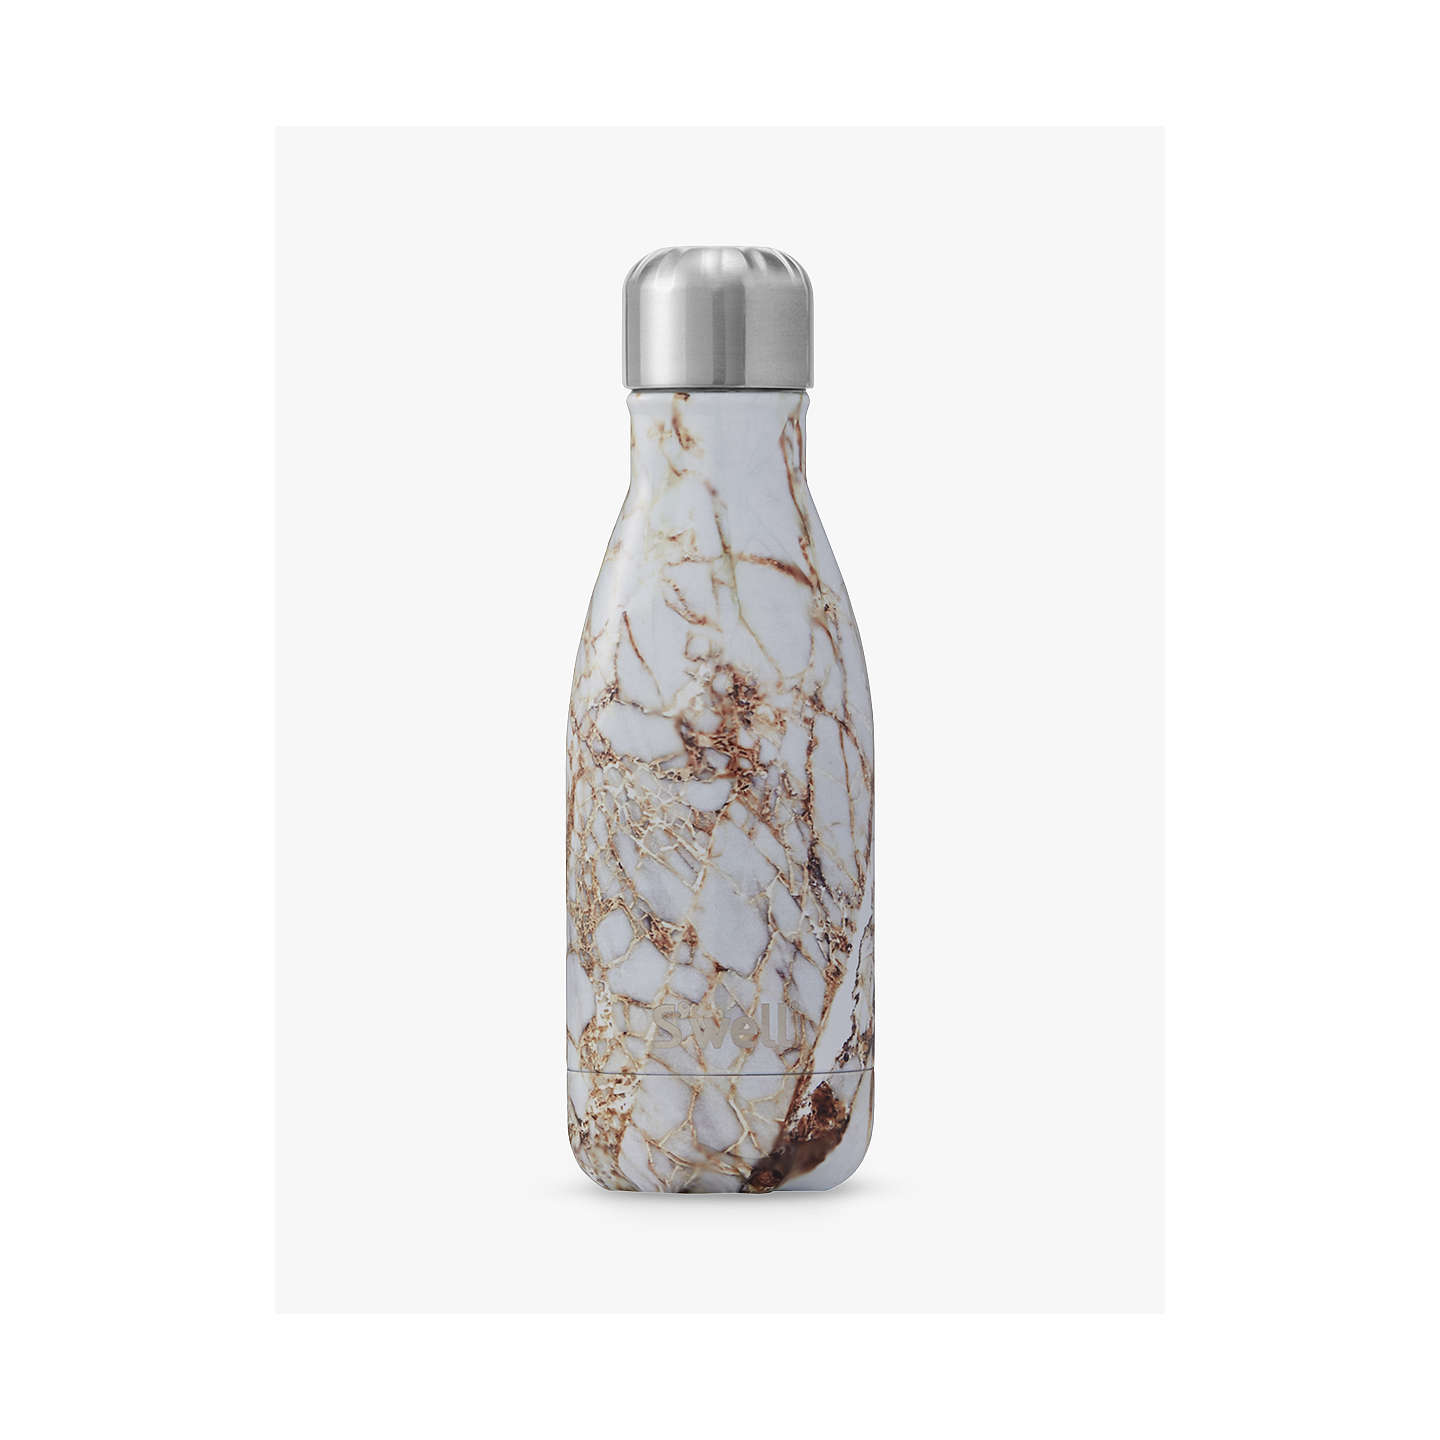 BuyS'well Calacatta Gold Marble Drinking Bottle, 260ml Online at johnlewis.com